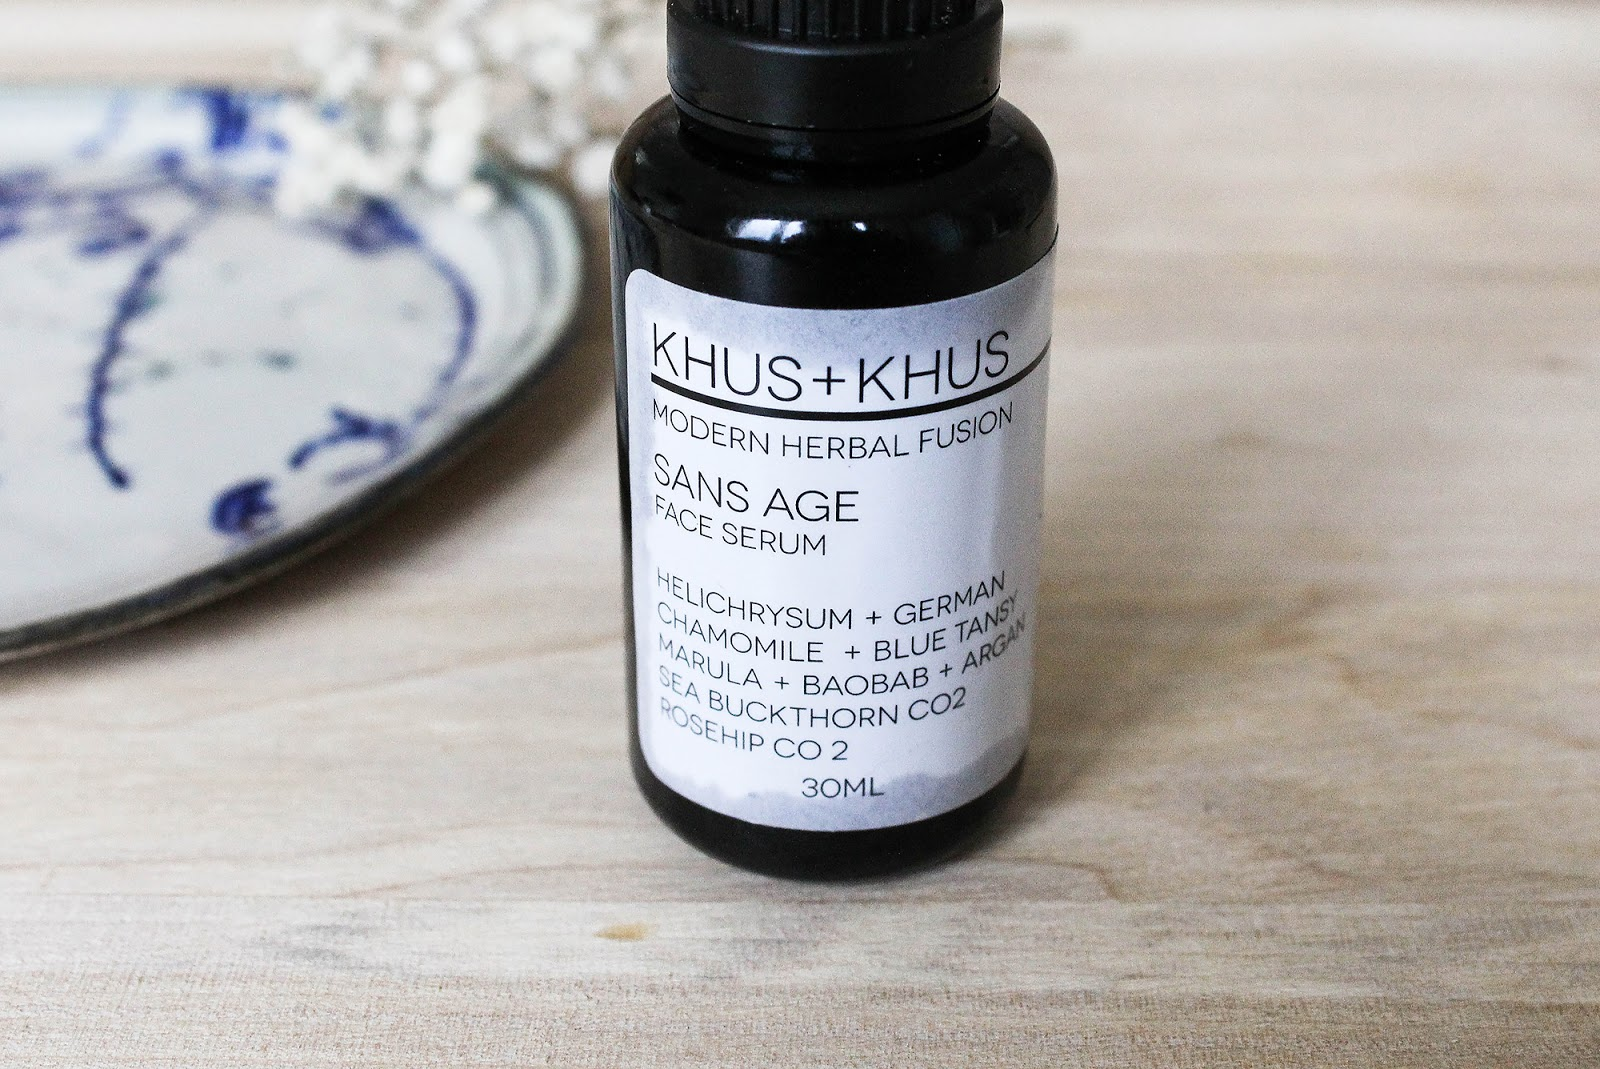 KHUS + KHUS Sans Age Face Serum Anti-inflammatory and soothing oil